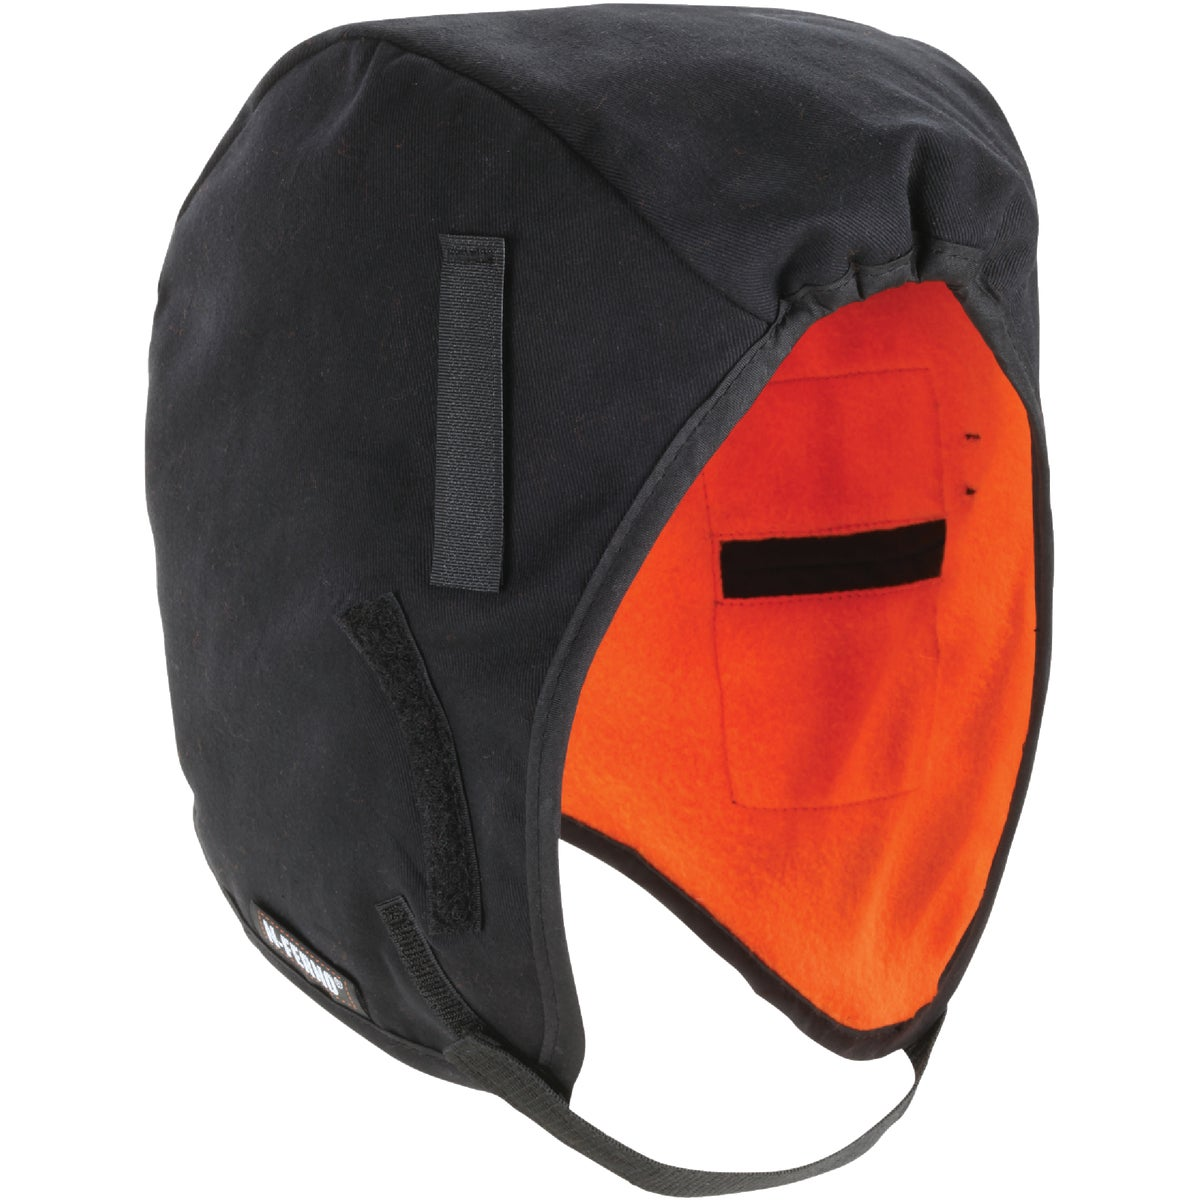 HARD HAT WINTER LINER - 16850 by Ergodyne Incom